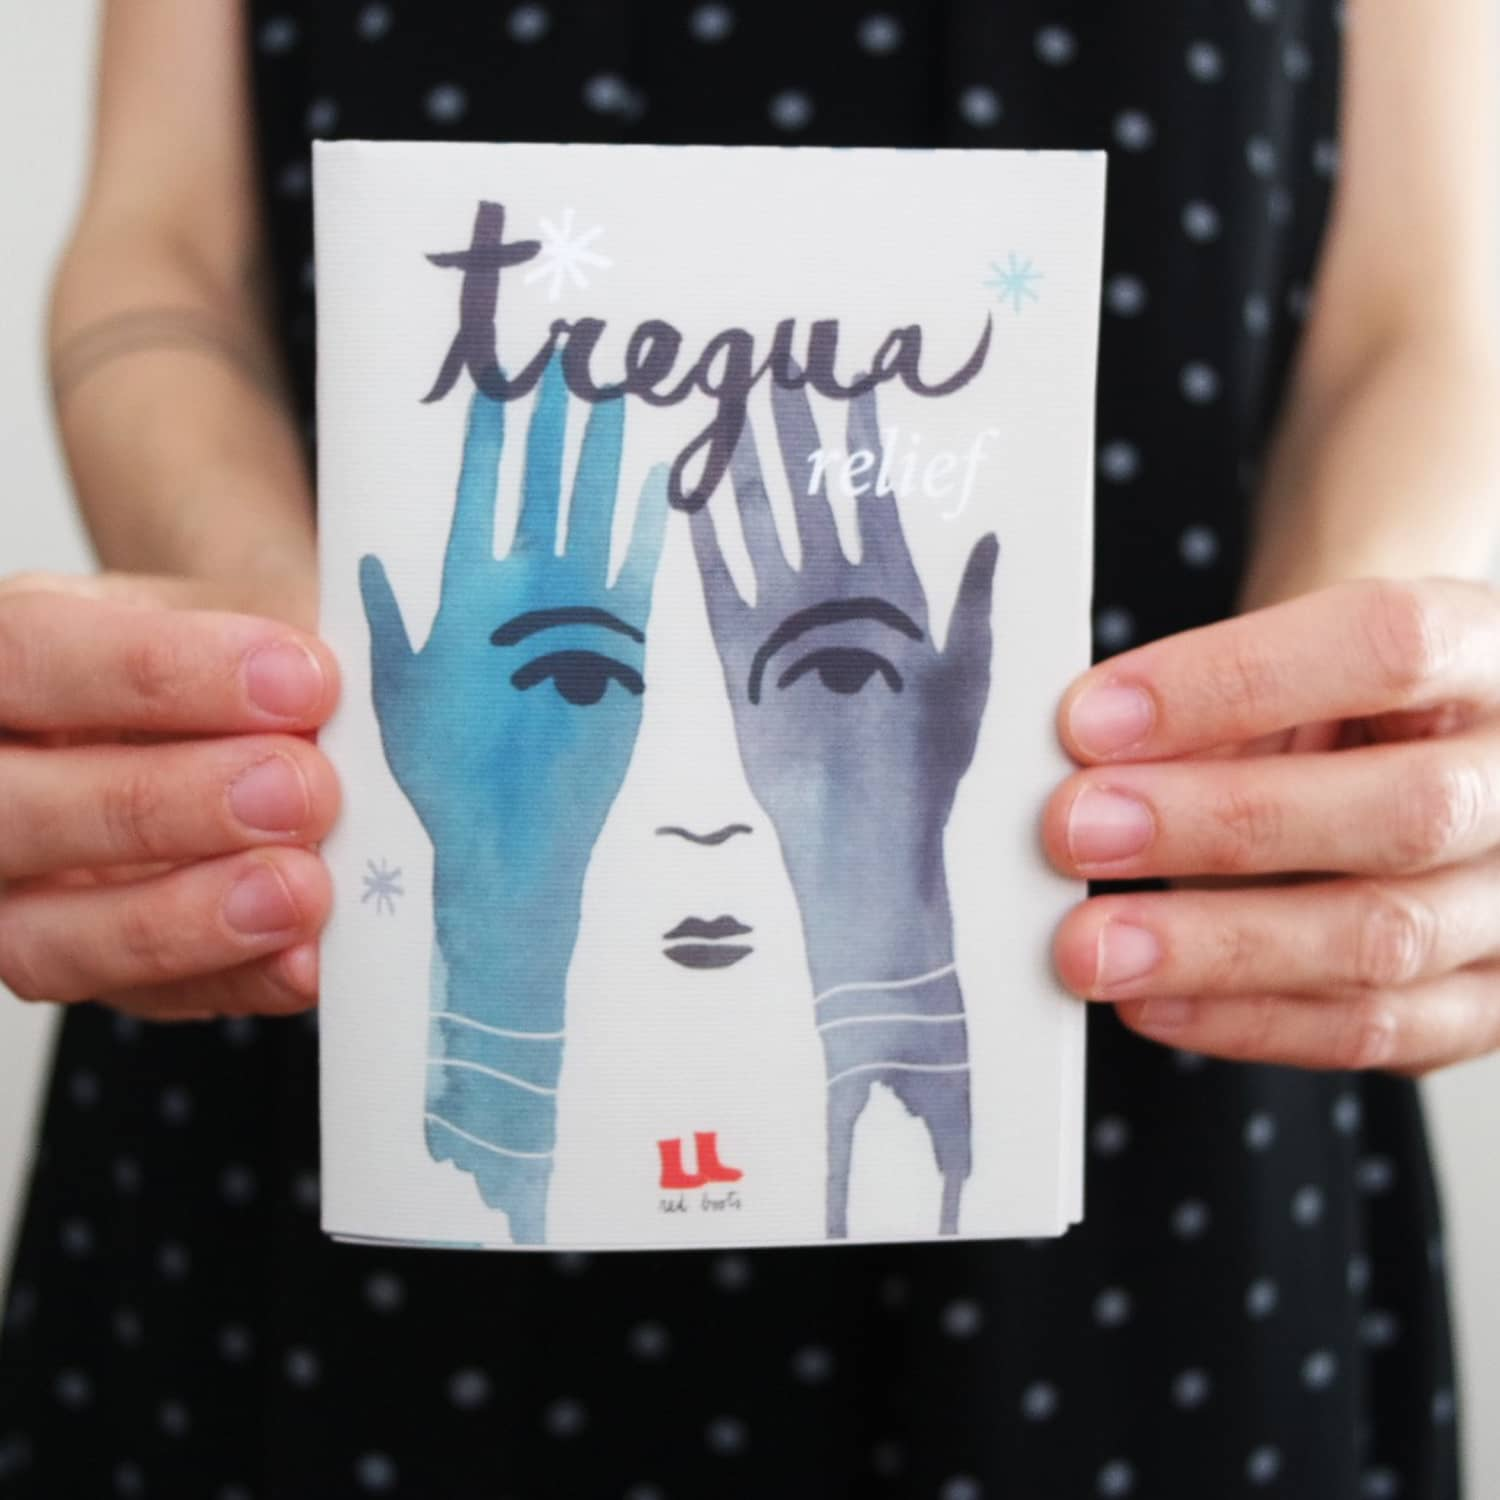 tregua // relief | a self-published zine and poster